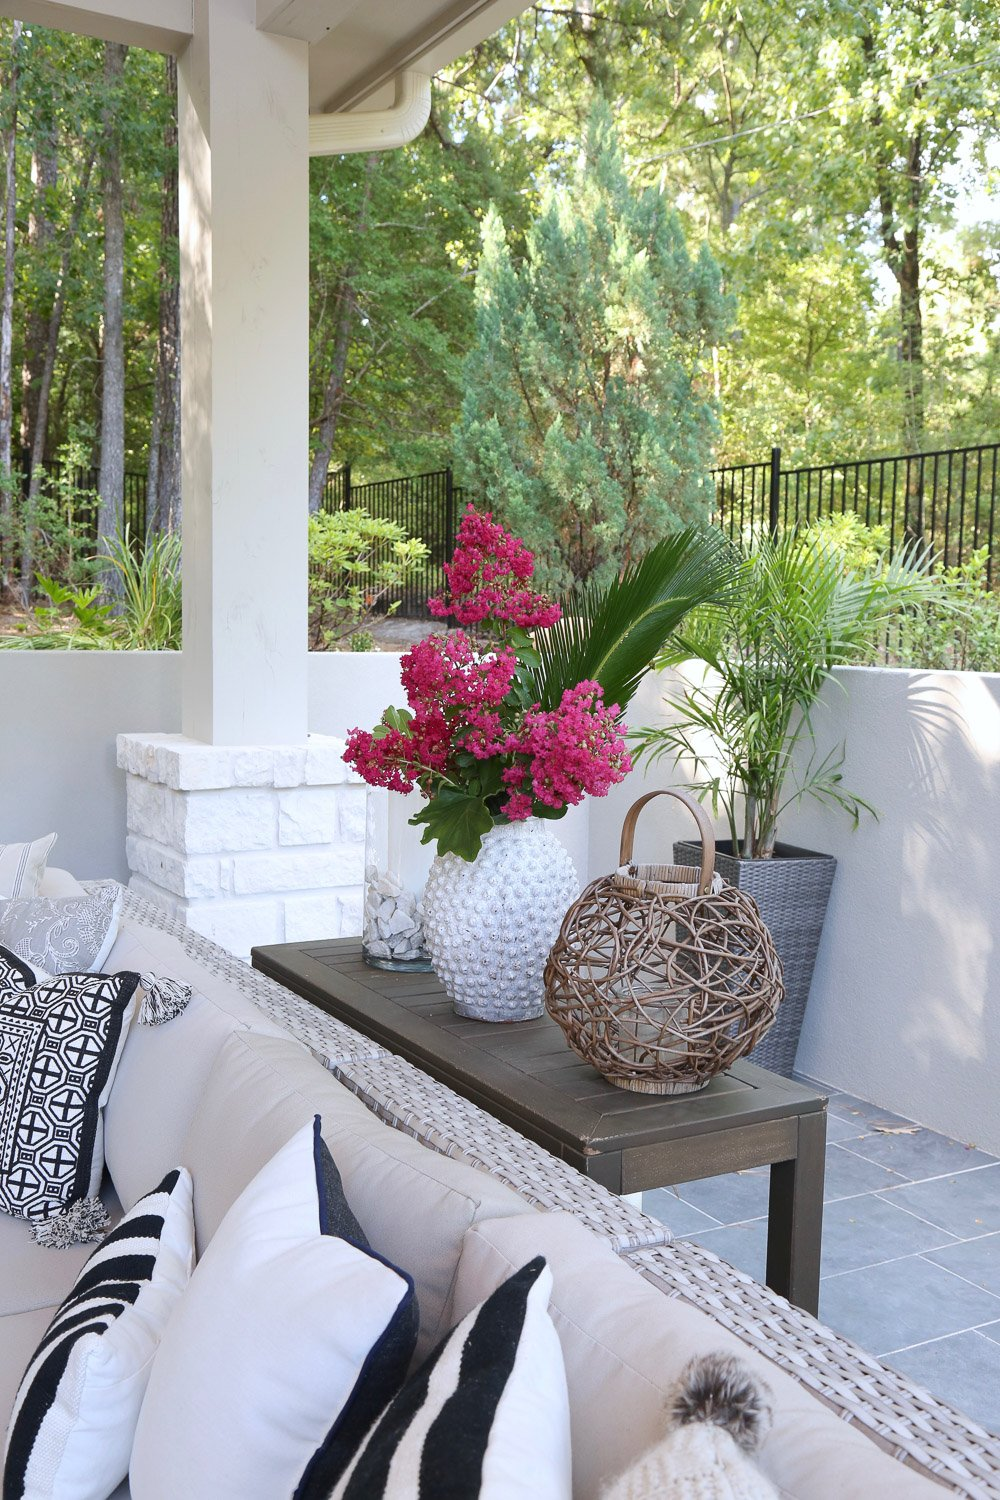 Use large vases with flower clippings from yard for outdoor decor.